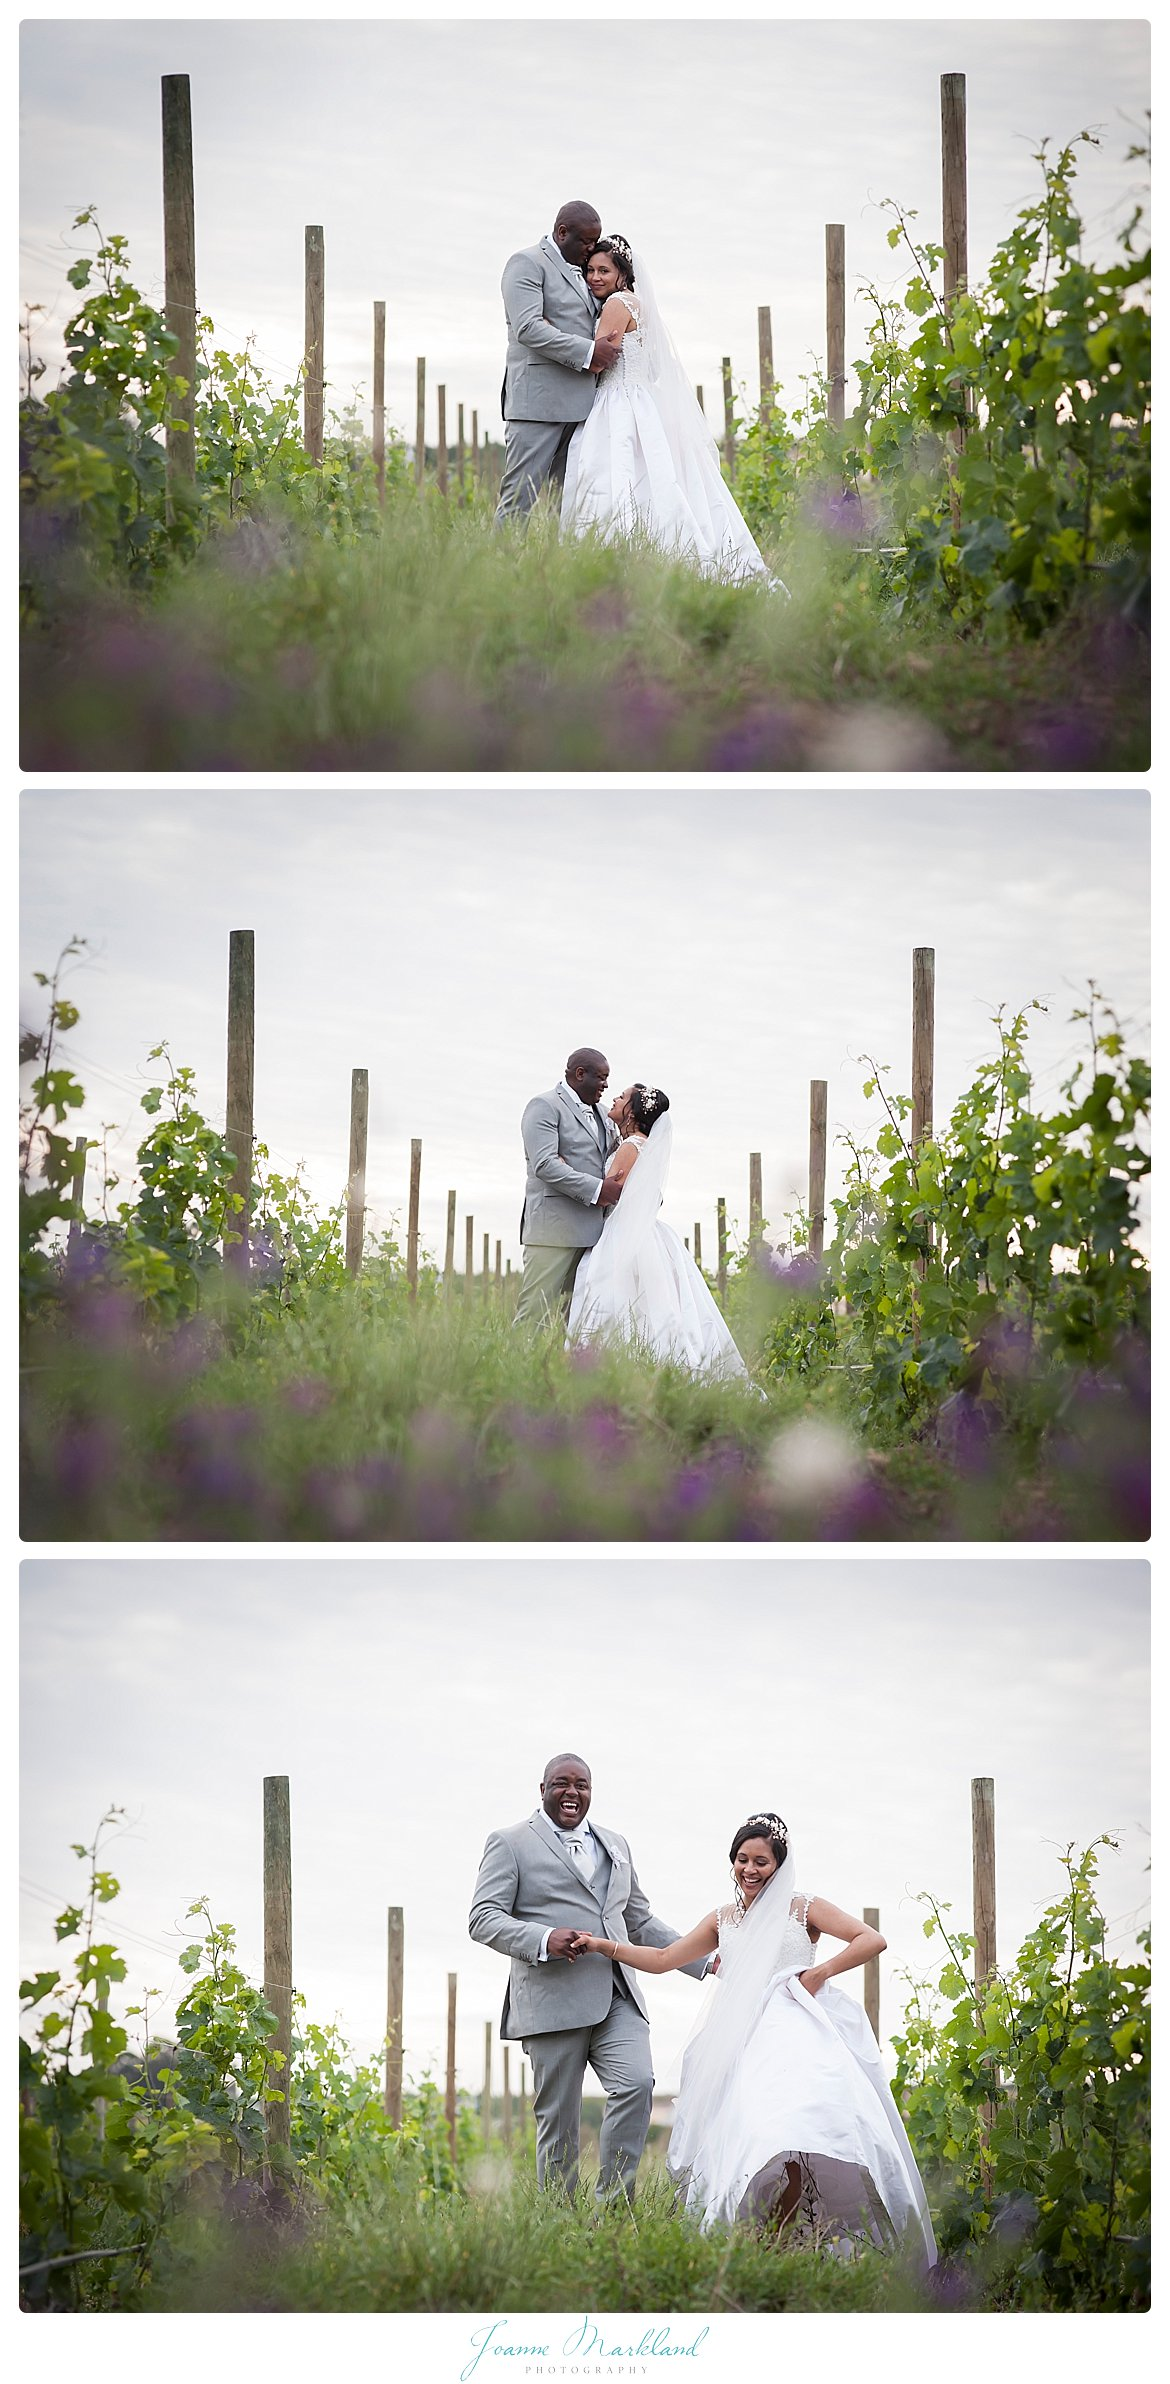 Val_de_vie_wedding_joanne_markland_photography_paarl-047